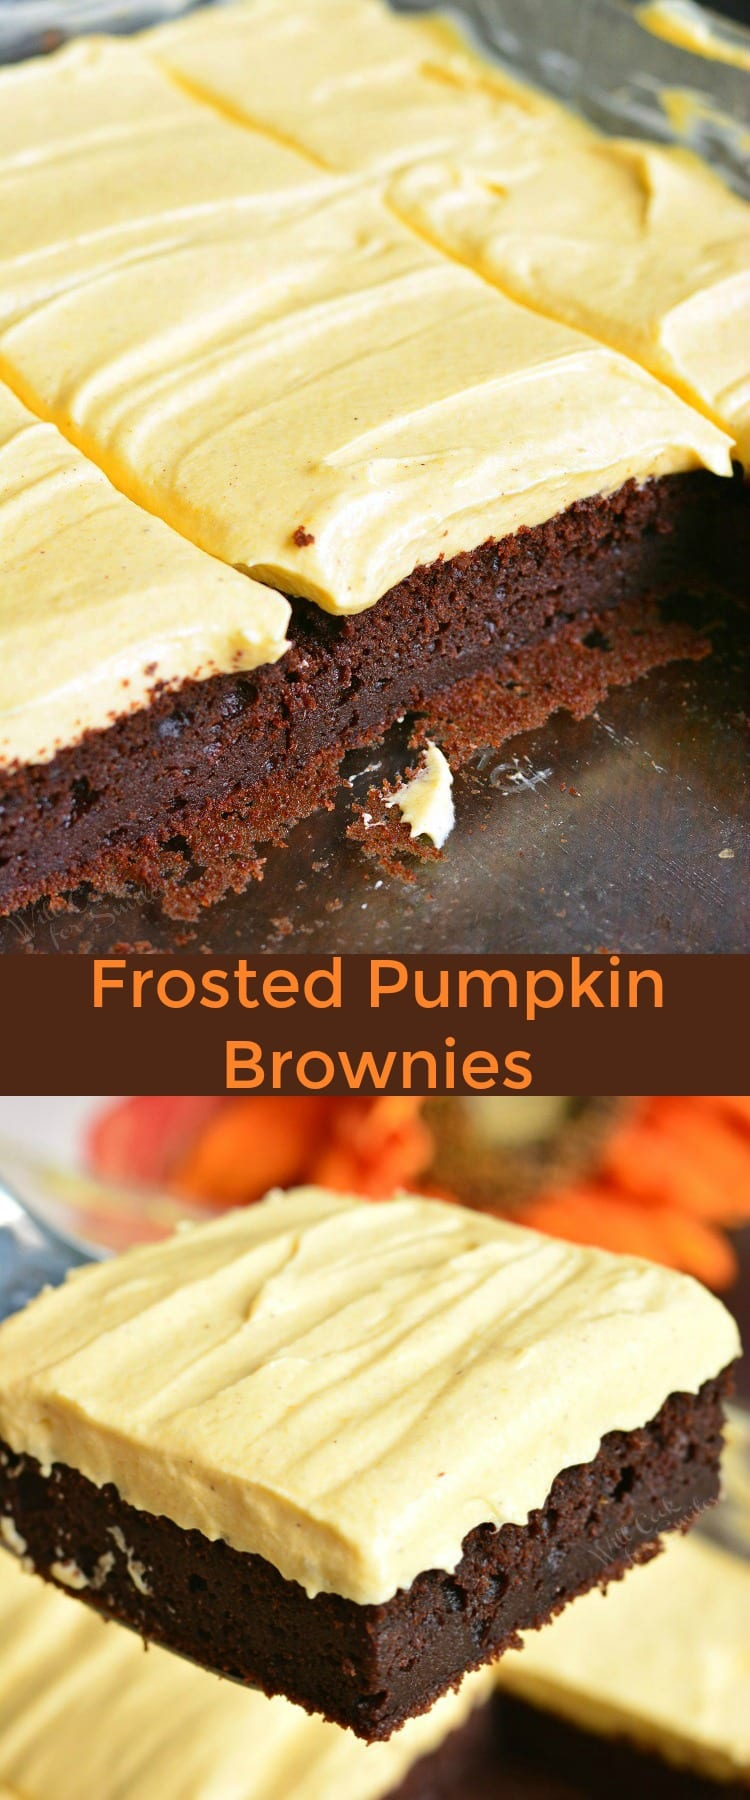 Frosted Pumpkin Brownie collage